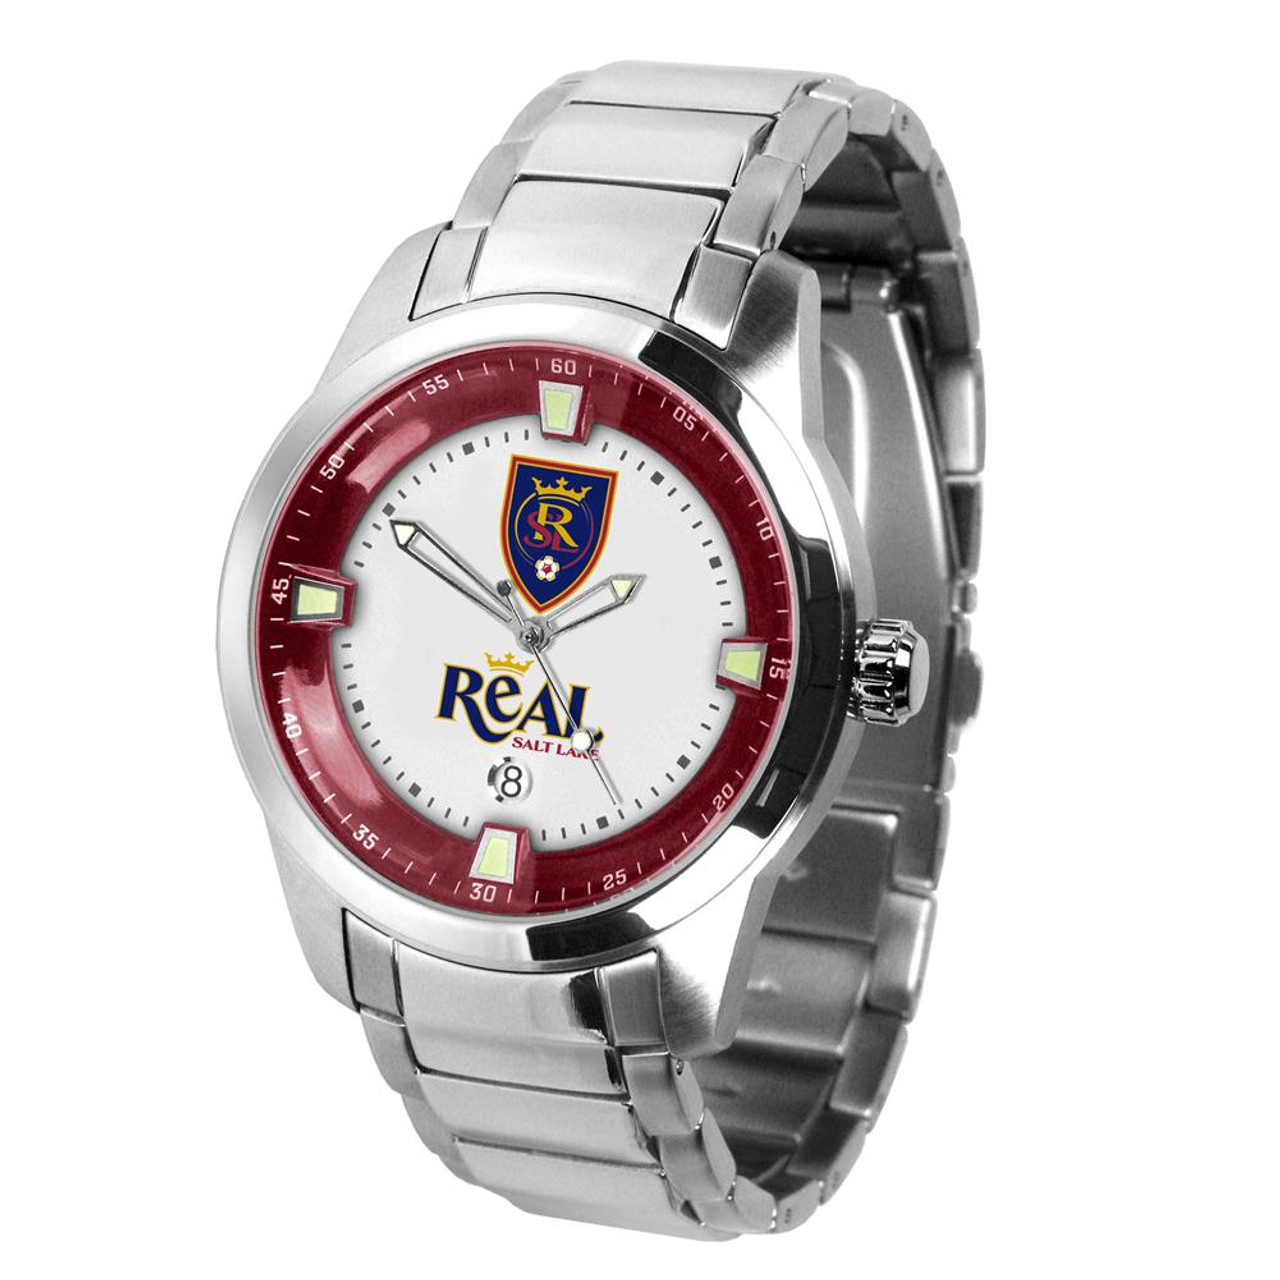 Mens Real Salt Lake Watch Stainless Steel Titan Watch